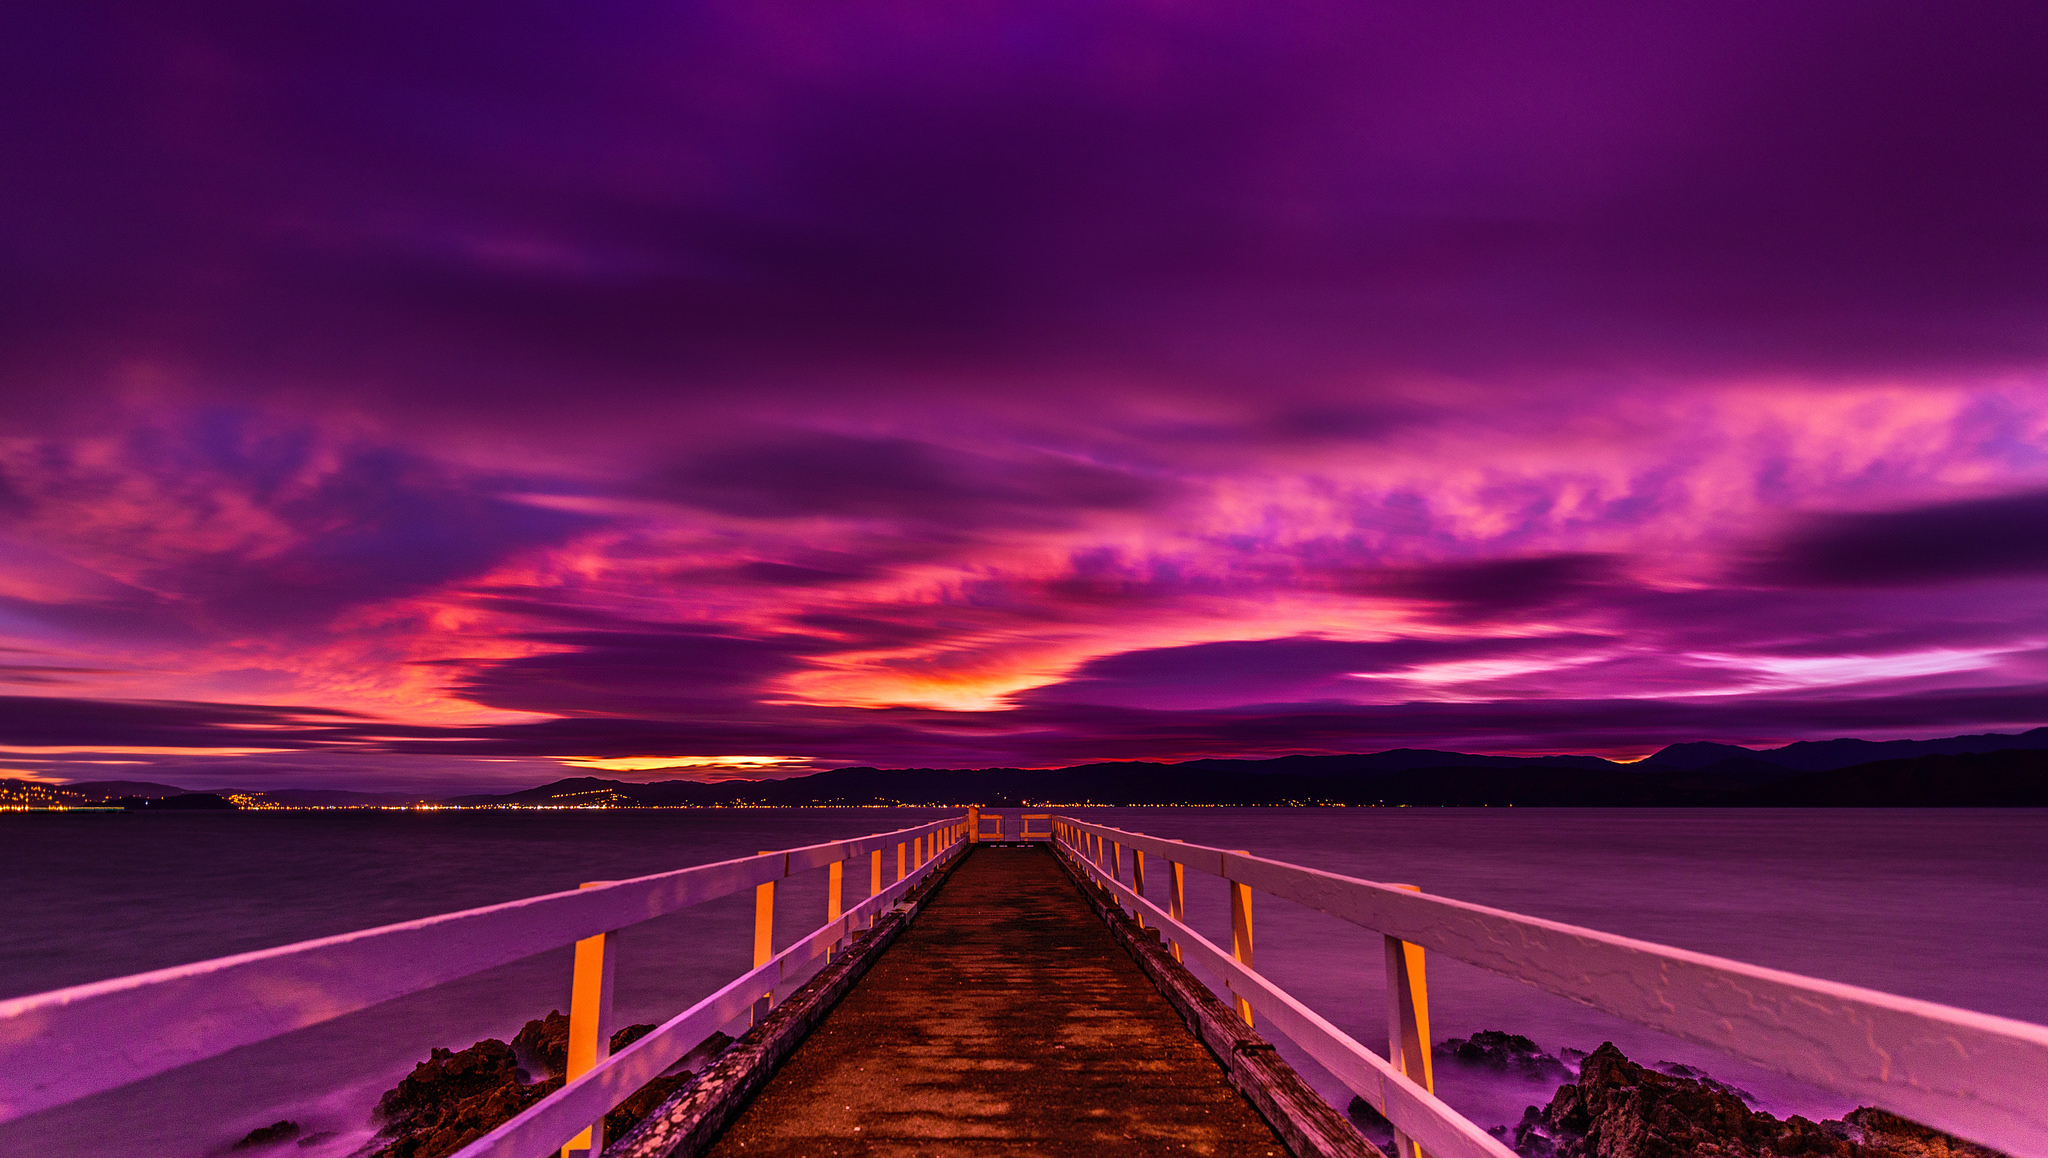 Purple Sunset over Pier Computer Wallpapers, Desktop ...